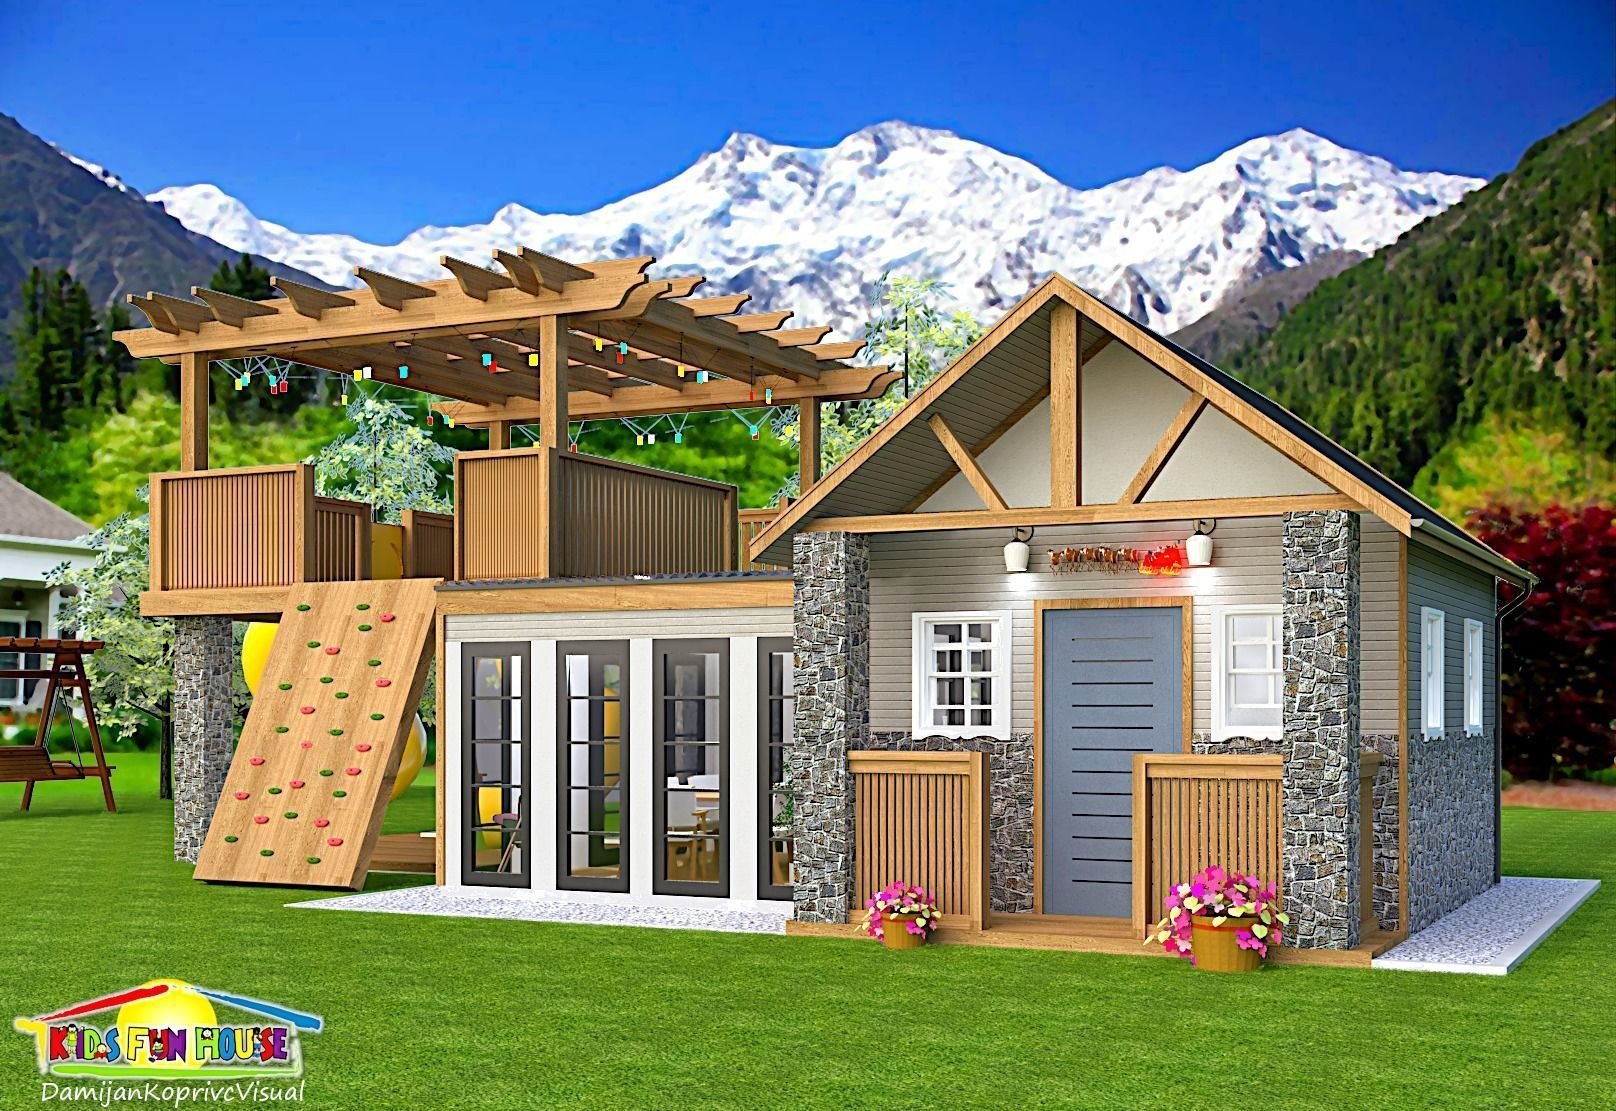 kids play and fun house | 3D model